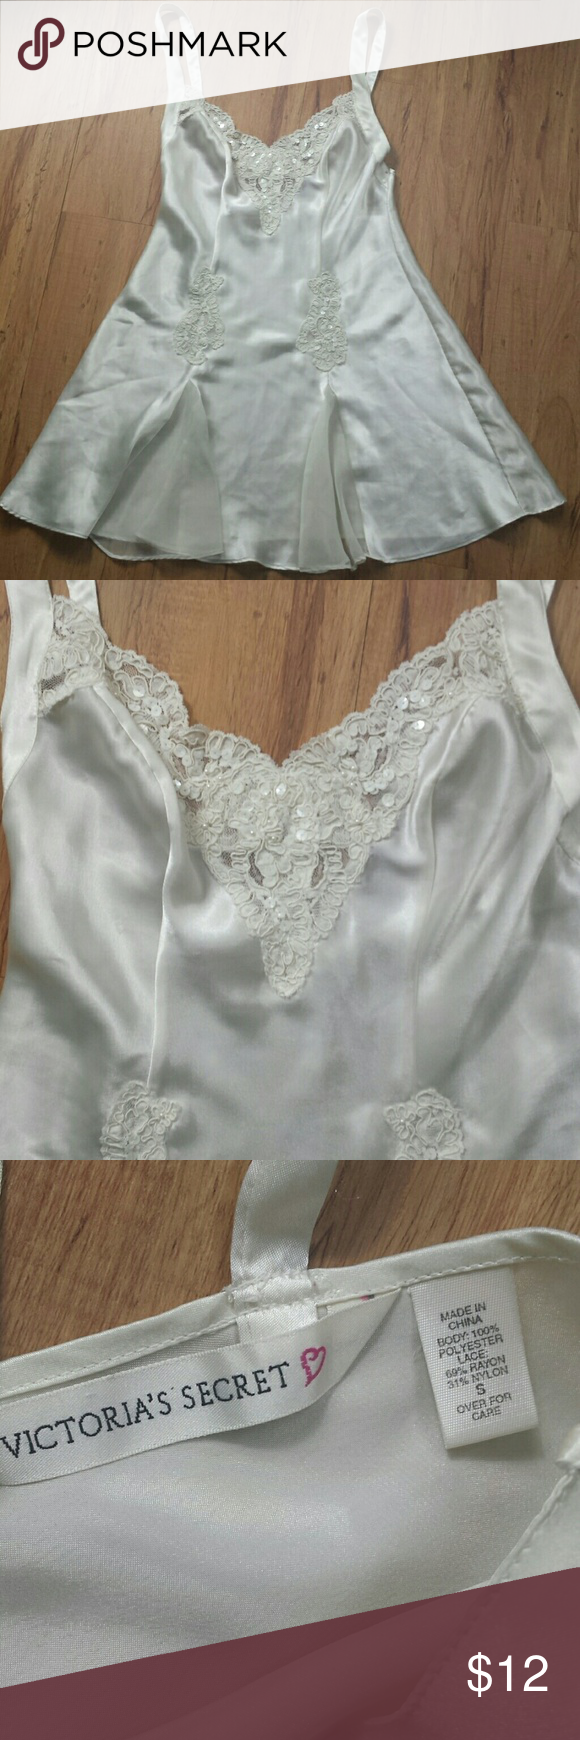 """VS Bridal Chemise Nightgown Lovely Victoria's Secret nightie is made of ivory polyester satin with beautiful lace and iridescent beads and spangle discs. It has 2 chiffon inserts at the bottom in front and has adjustable shoulder straps.  Across the chest measurement 17""""  Length 27""""  Good used condition Victoria's Secret Intimates & Sleepwear Chemises & Slips"""